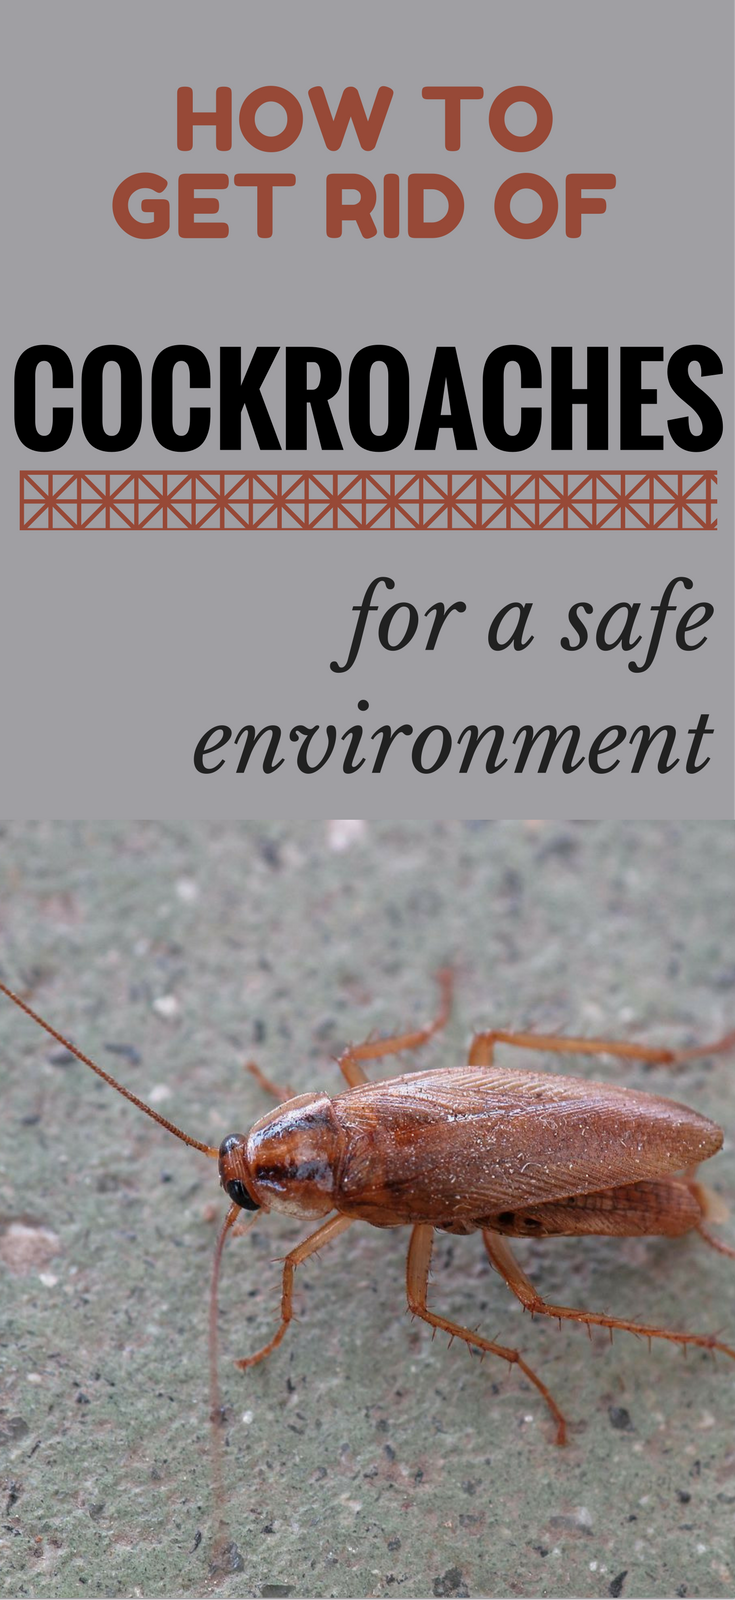 How To Get Rid Of Cockroaches For A Safe Environment